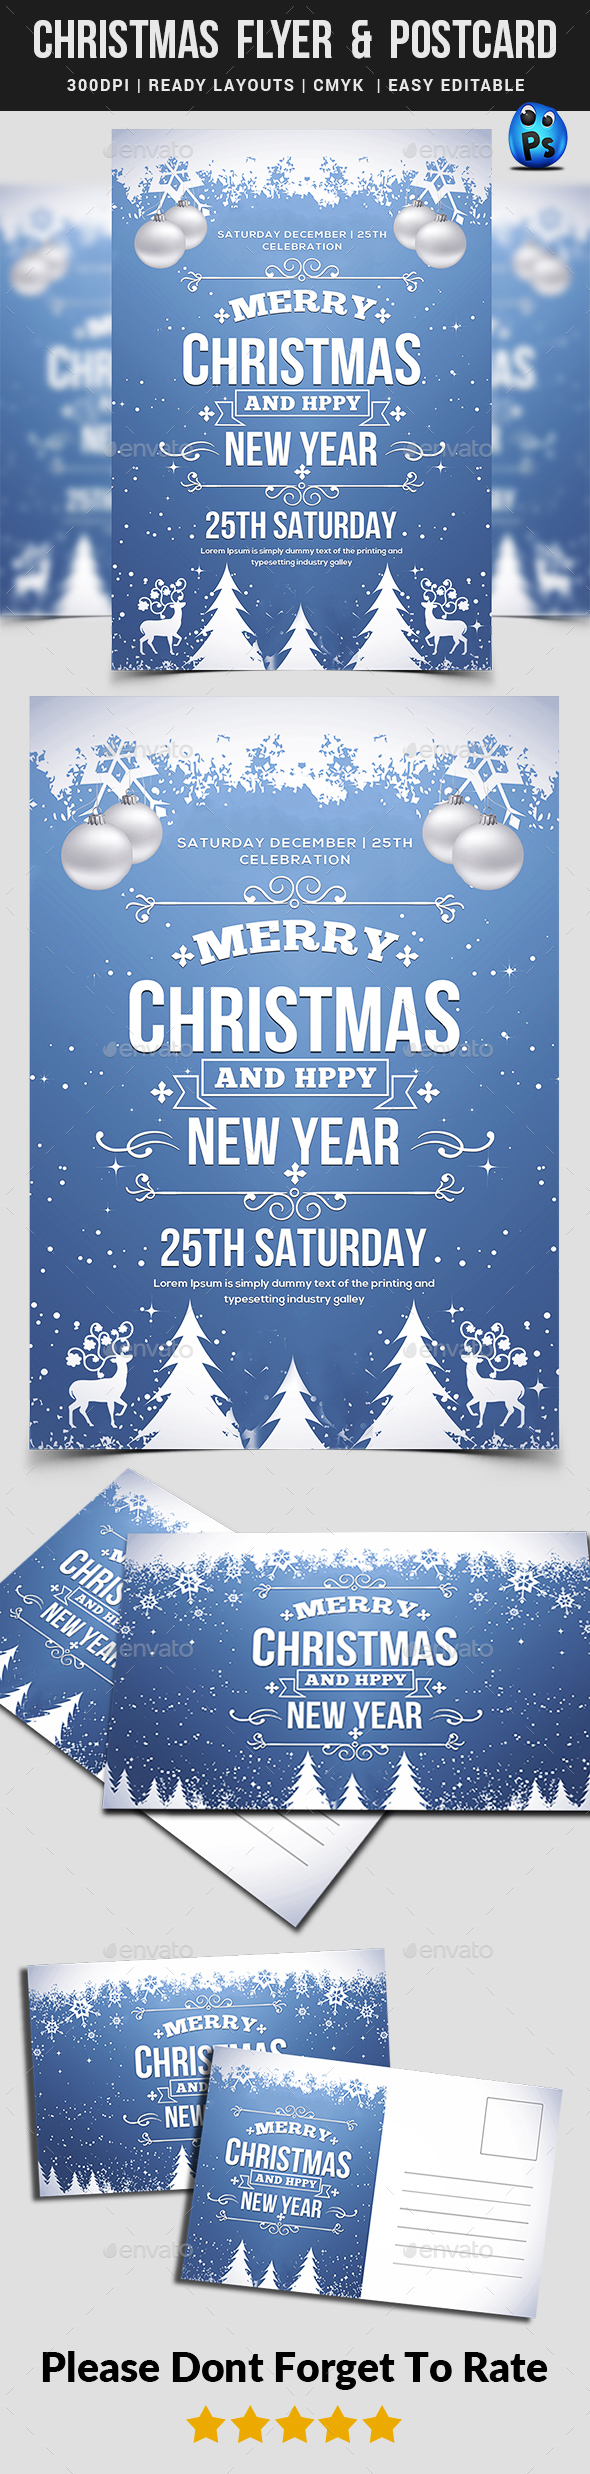 Christmas Flyer Postcard Templates - Events Flyers